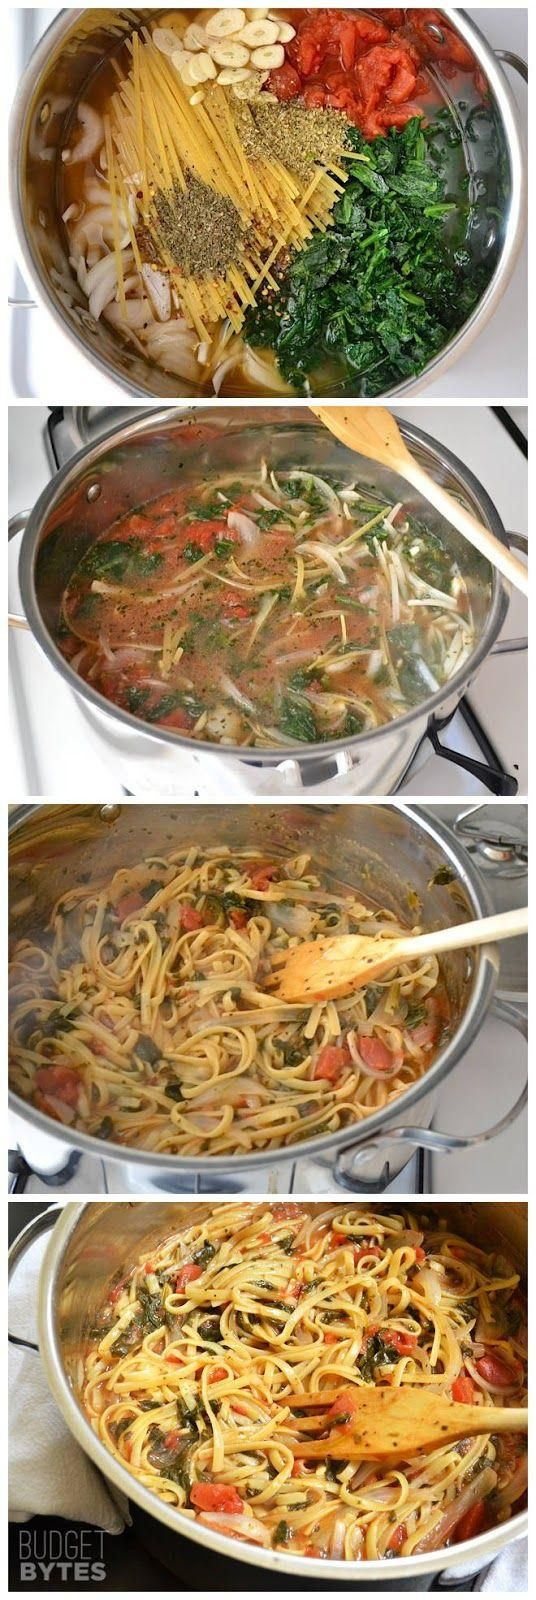 Italian Wonderpot  4 cups vegetable broth,  2 Tbsp olive oil, 12 oz. fettuccine, 8 oz. frozen chopped spinach, 1 (28 oz.) can diced tomatoes, 1 medium onion, 4 cloves garlic, ½ Tbsp dried basil, ½ Tbsp dried oregano, ¼ tsp red pepper flakes, freshly cracked pepper to taste, 2 oz. feta cheese.: Mail, Red Peppers, Italian Wonderpot, Olives Oil, Olive Oils, Frozen Spinach Recipes, Italianwonderpot, Vegetables Broth, One Pots